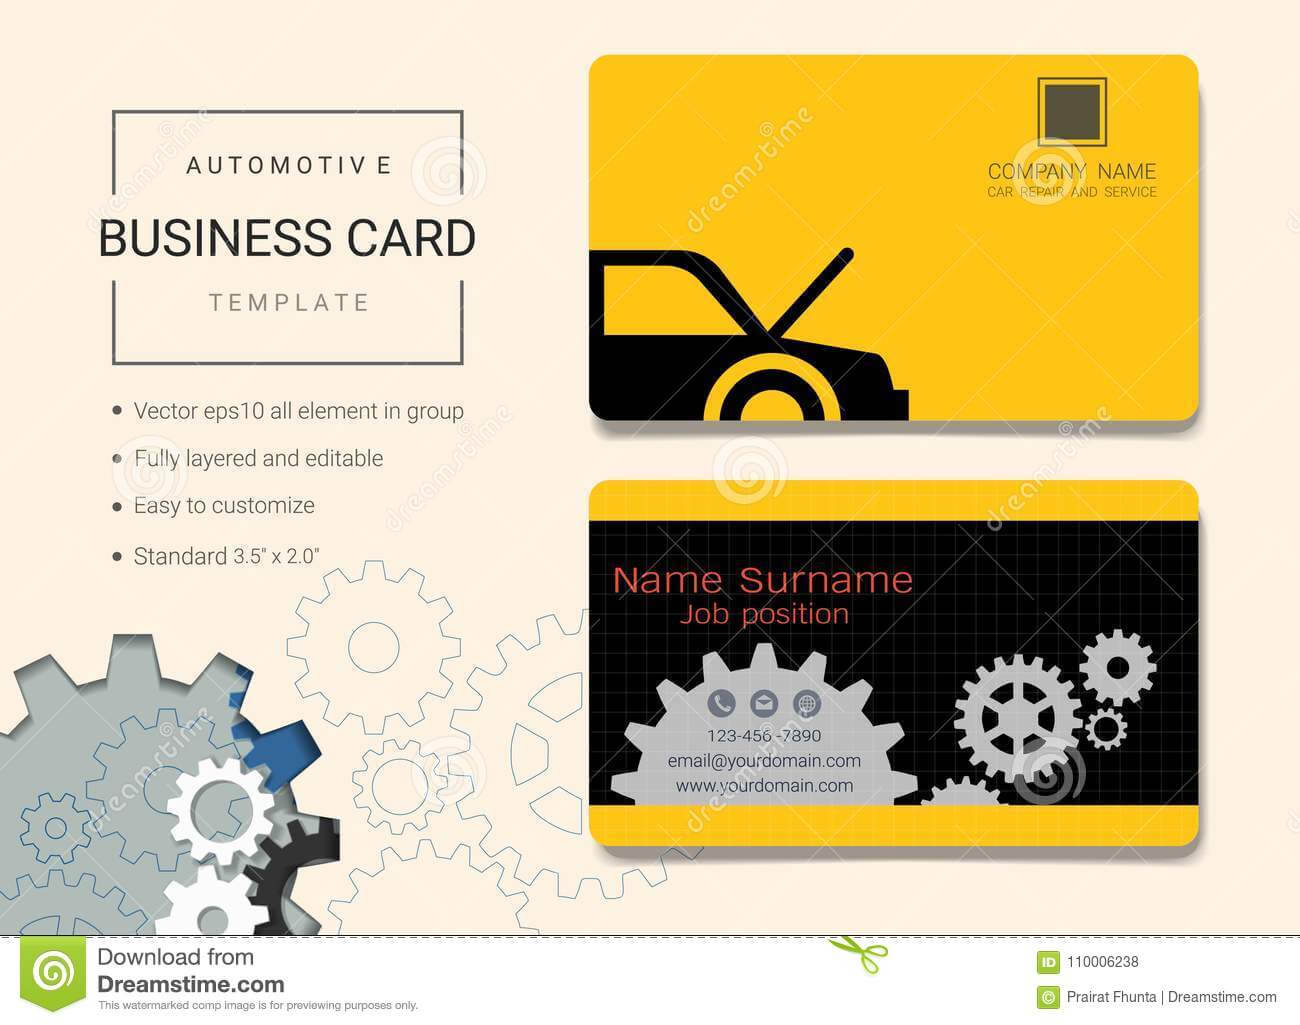 Automotive Business Card Or Name Card Template. Stock Vector With Automotive Business Card Templates